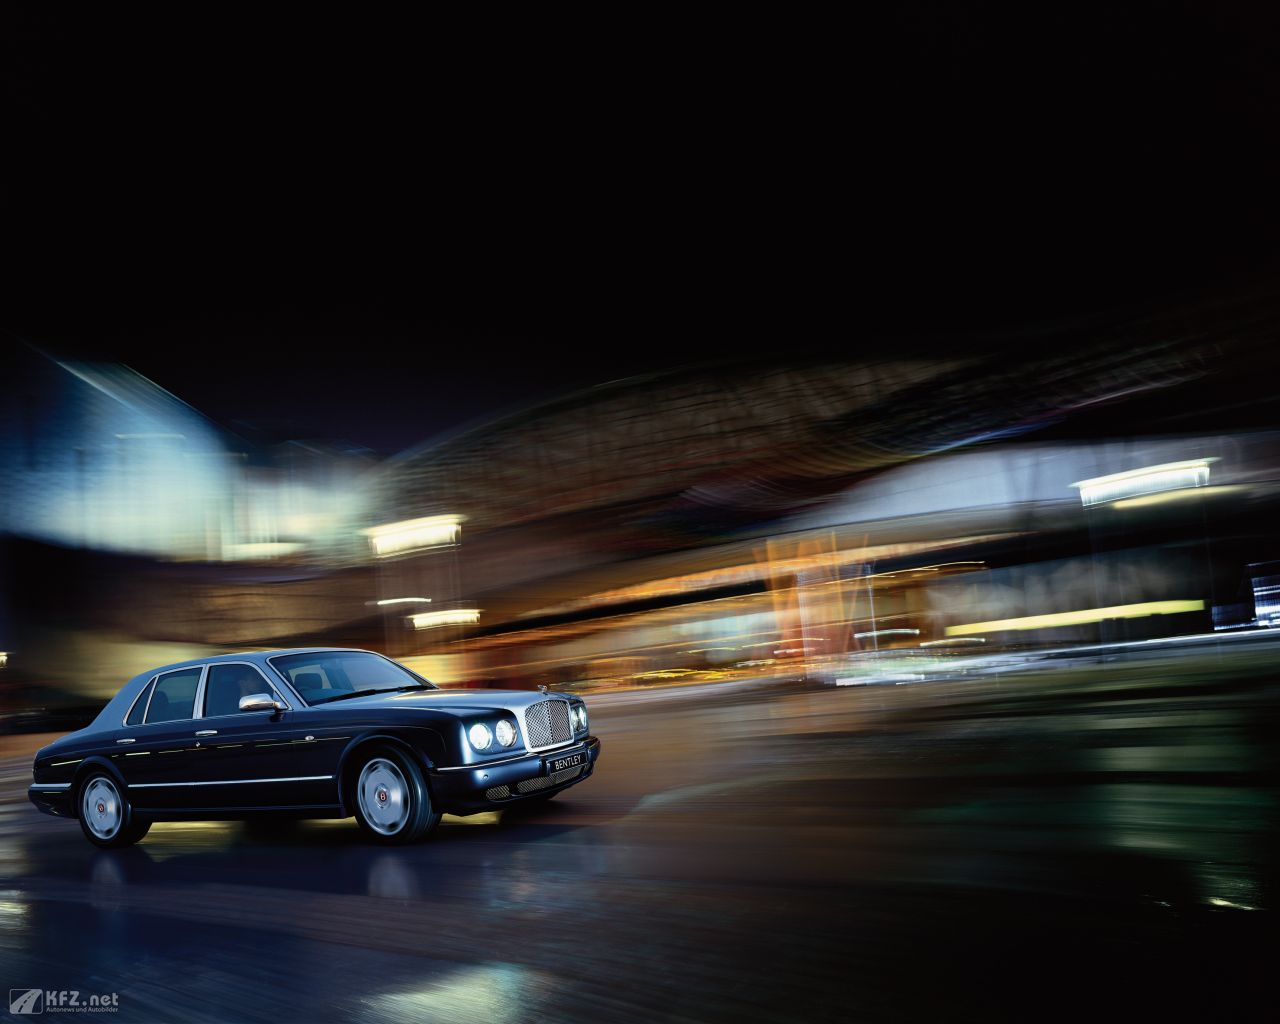 bentley-arnage-1280x1024-11